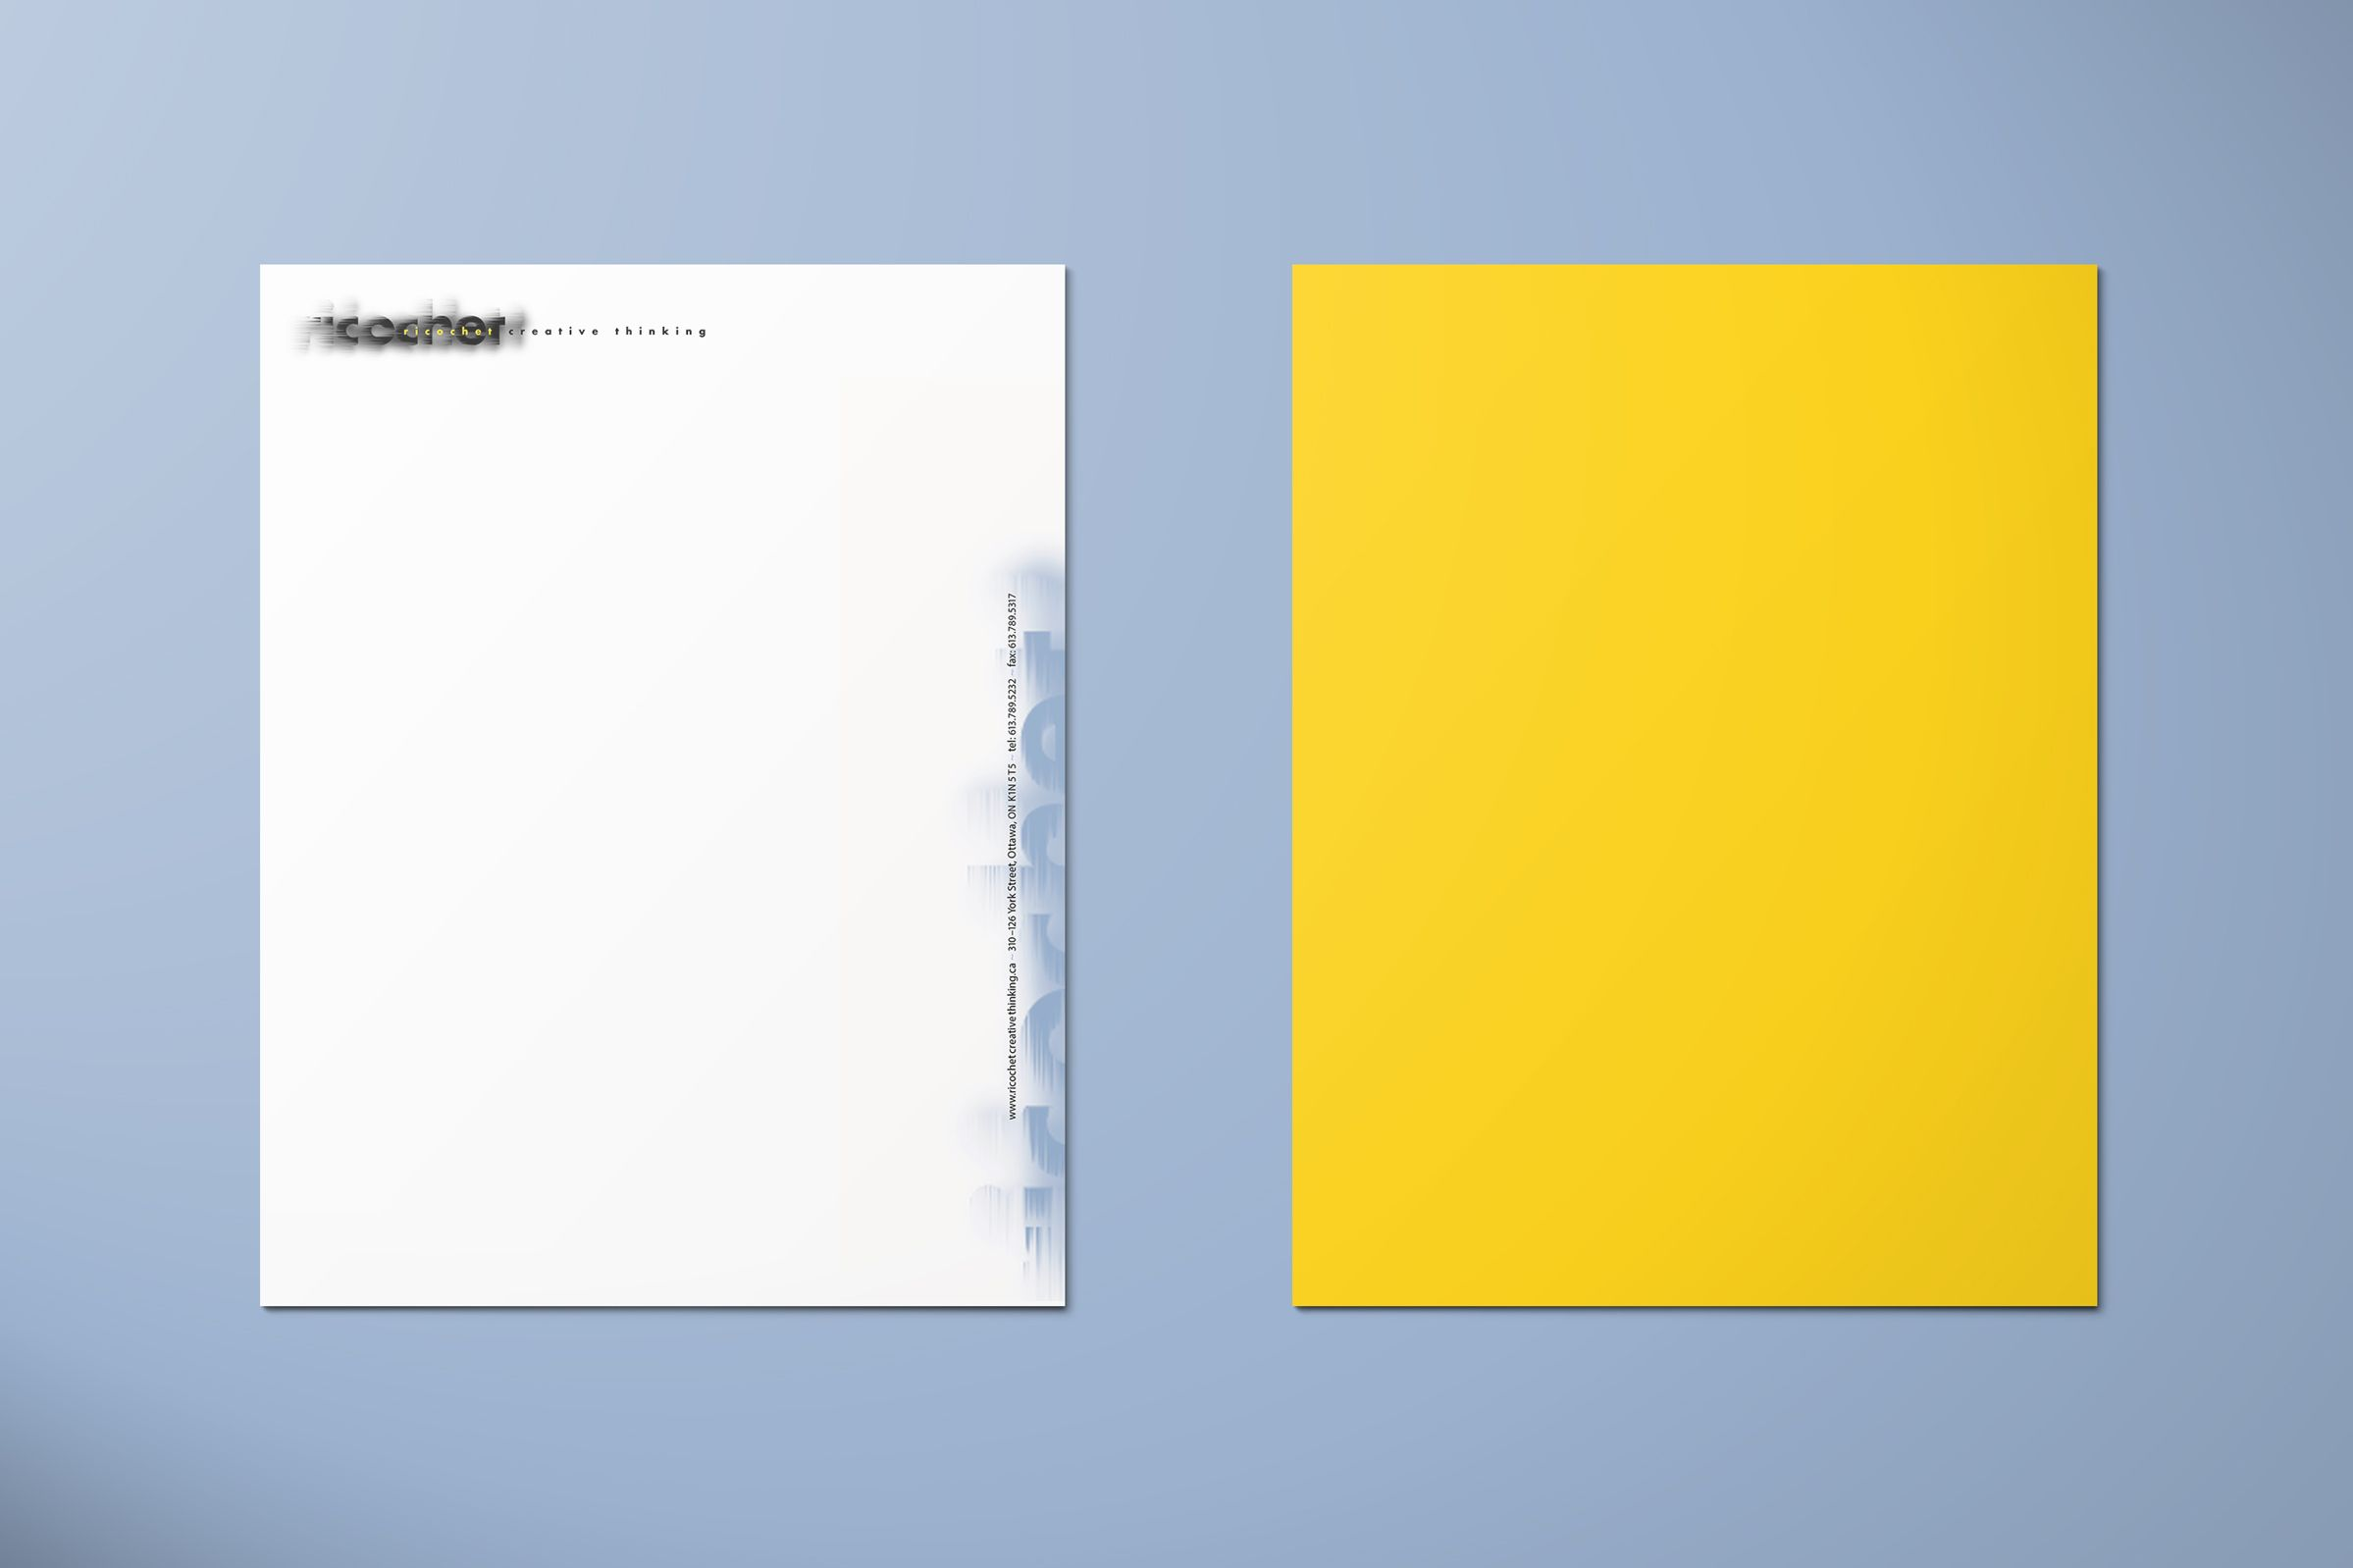 Ricochet Creative Thinking Letterhead by Ottawa Graphic Designer idApostle